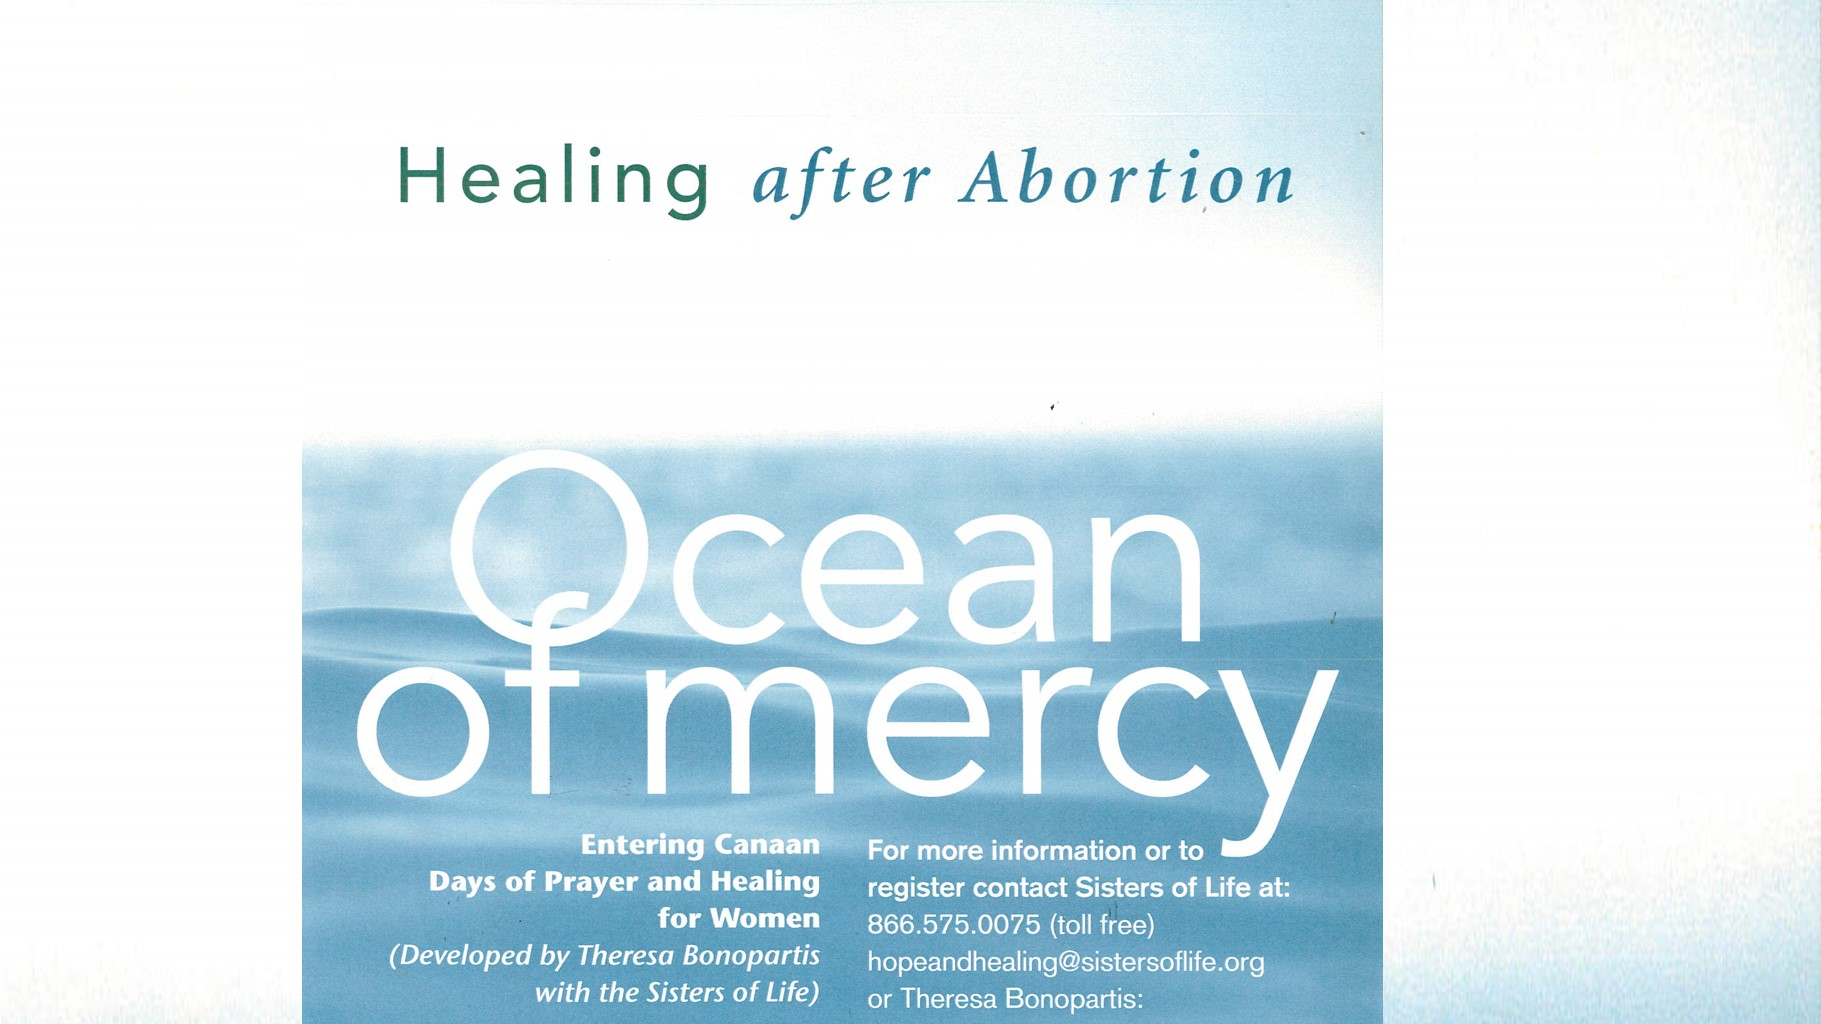 080220 Healing after Abortion